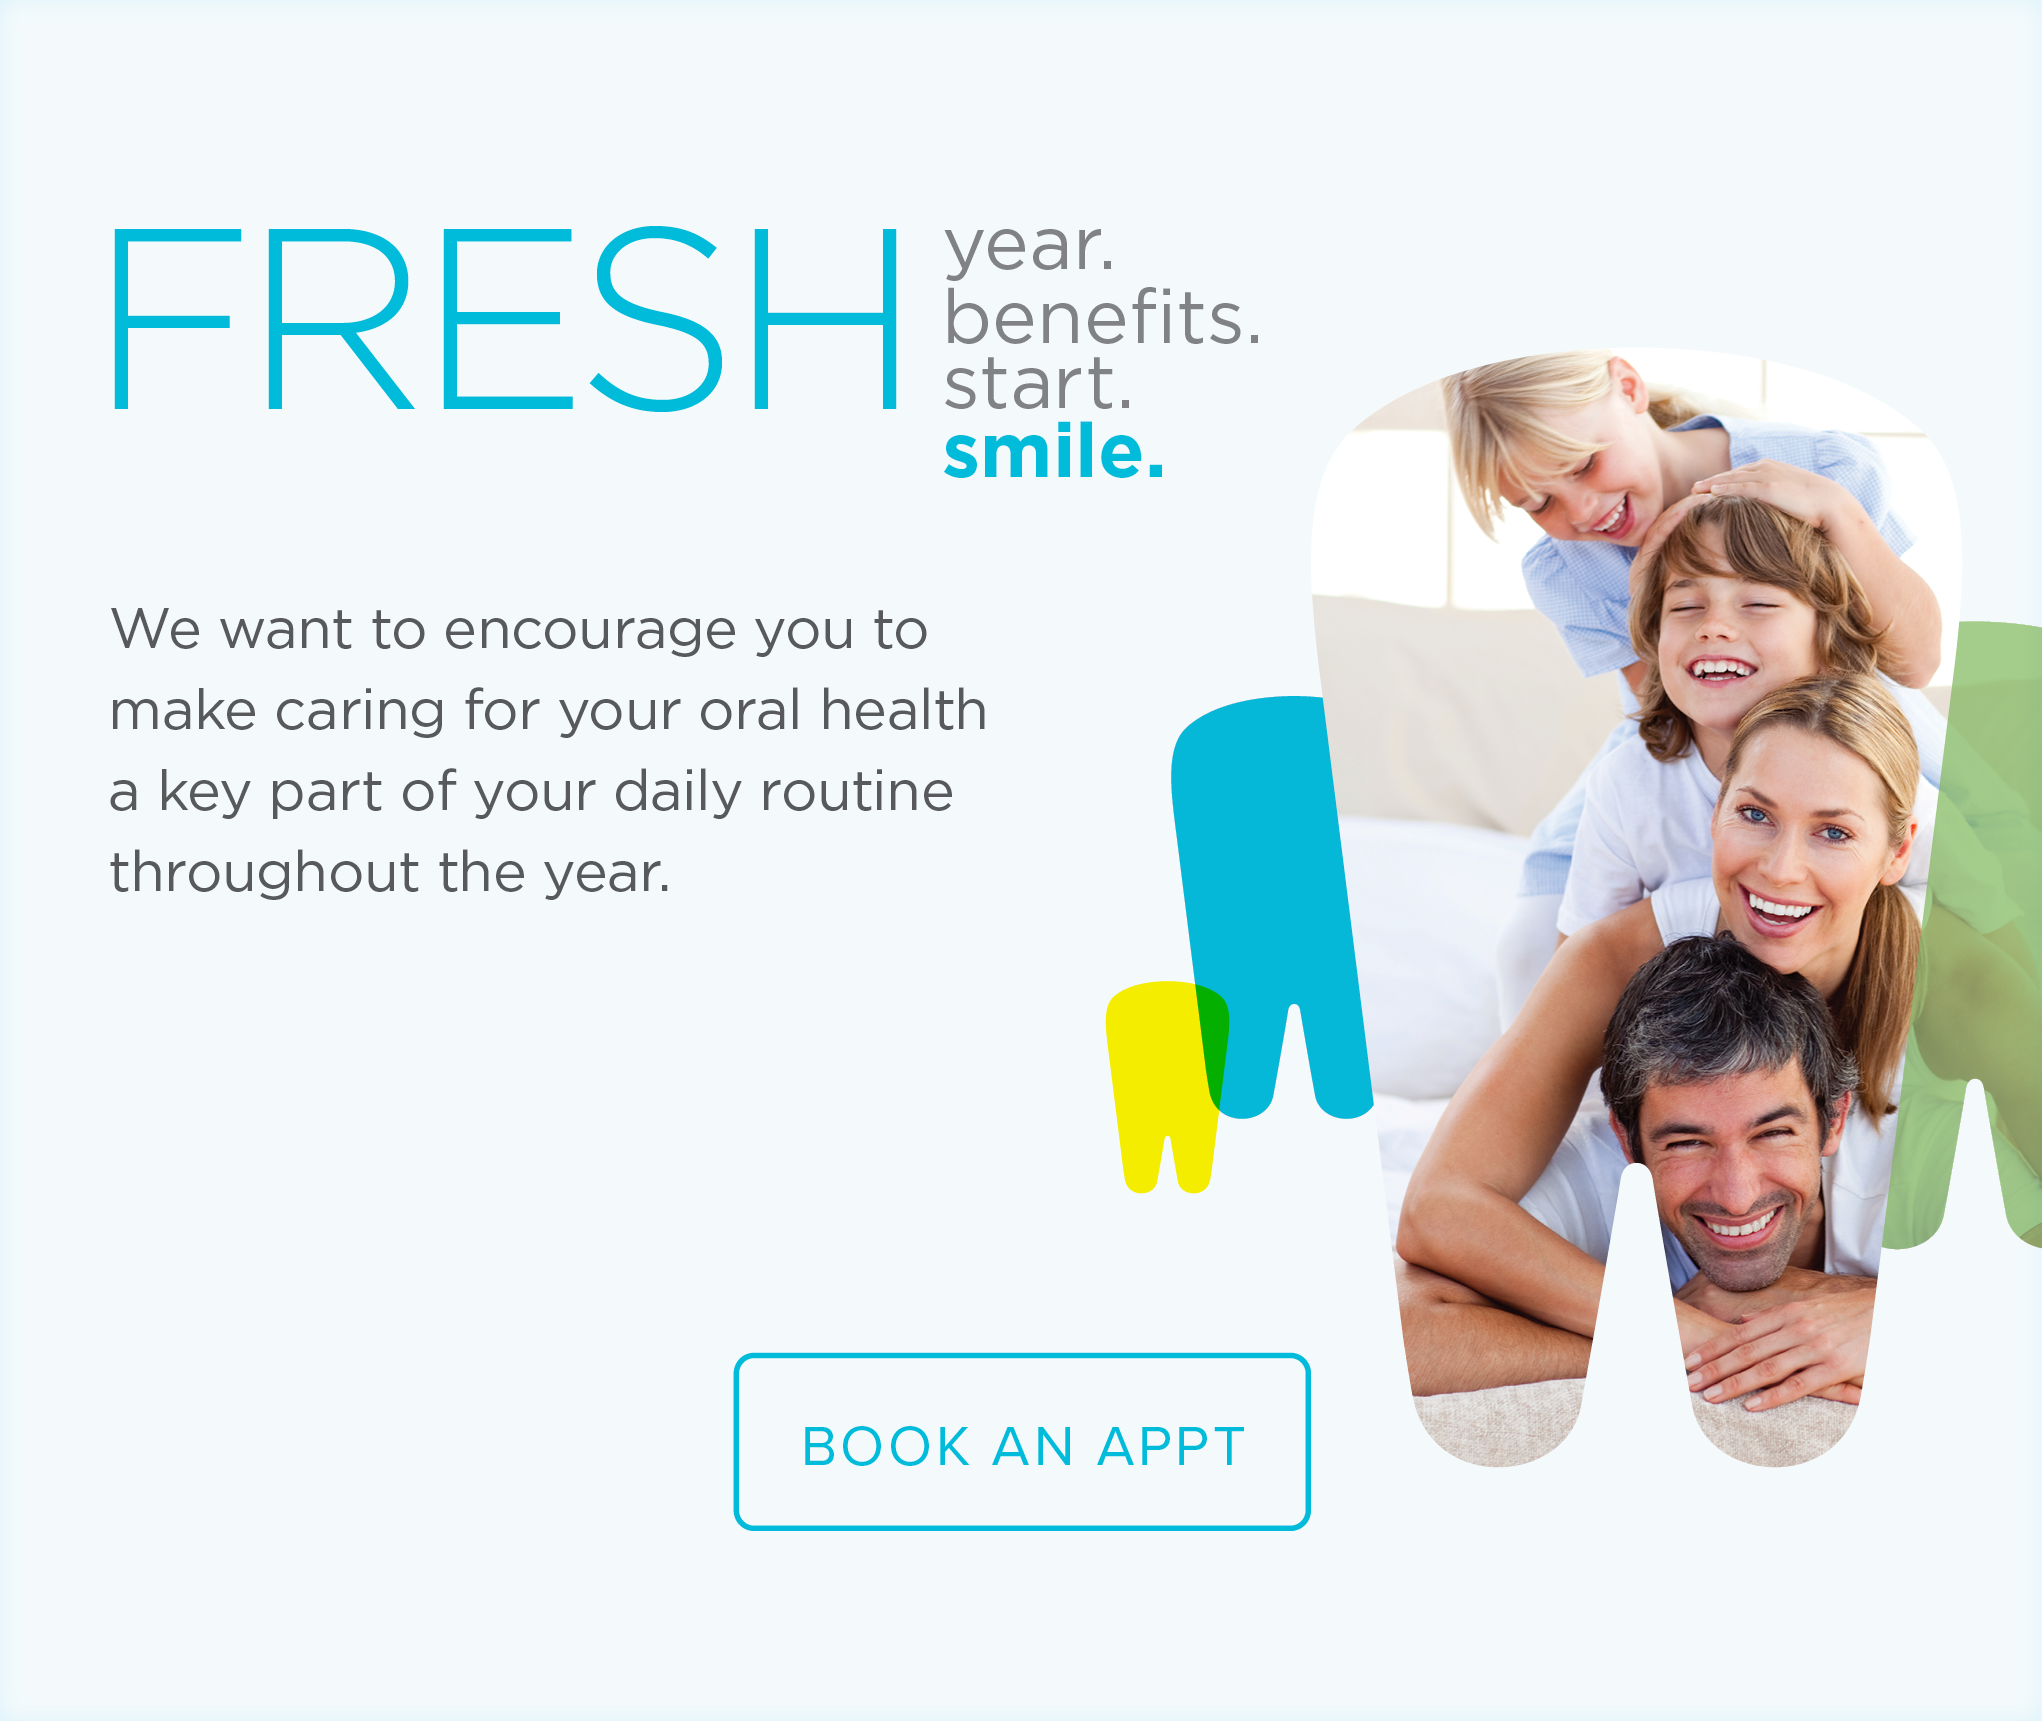 Liberty Oaks Dental Group - Make the Most of Your Benefits